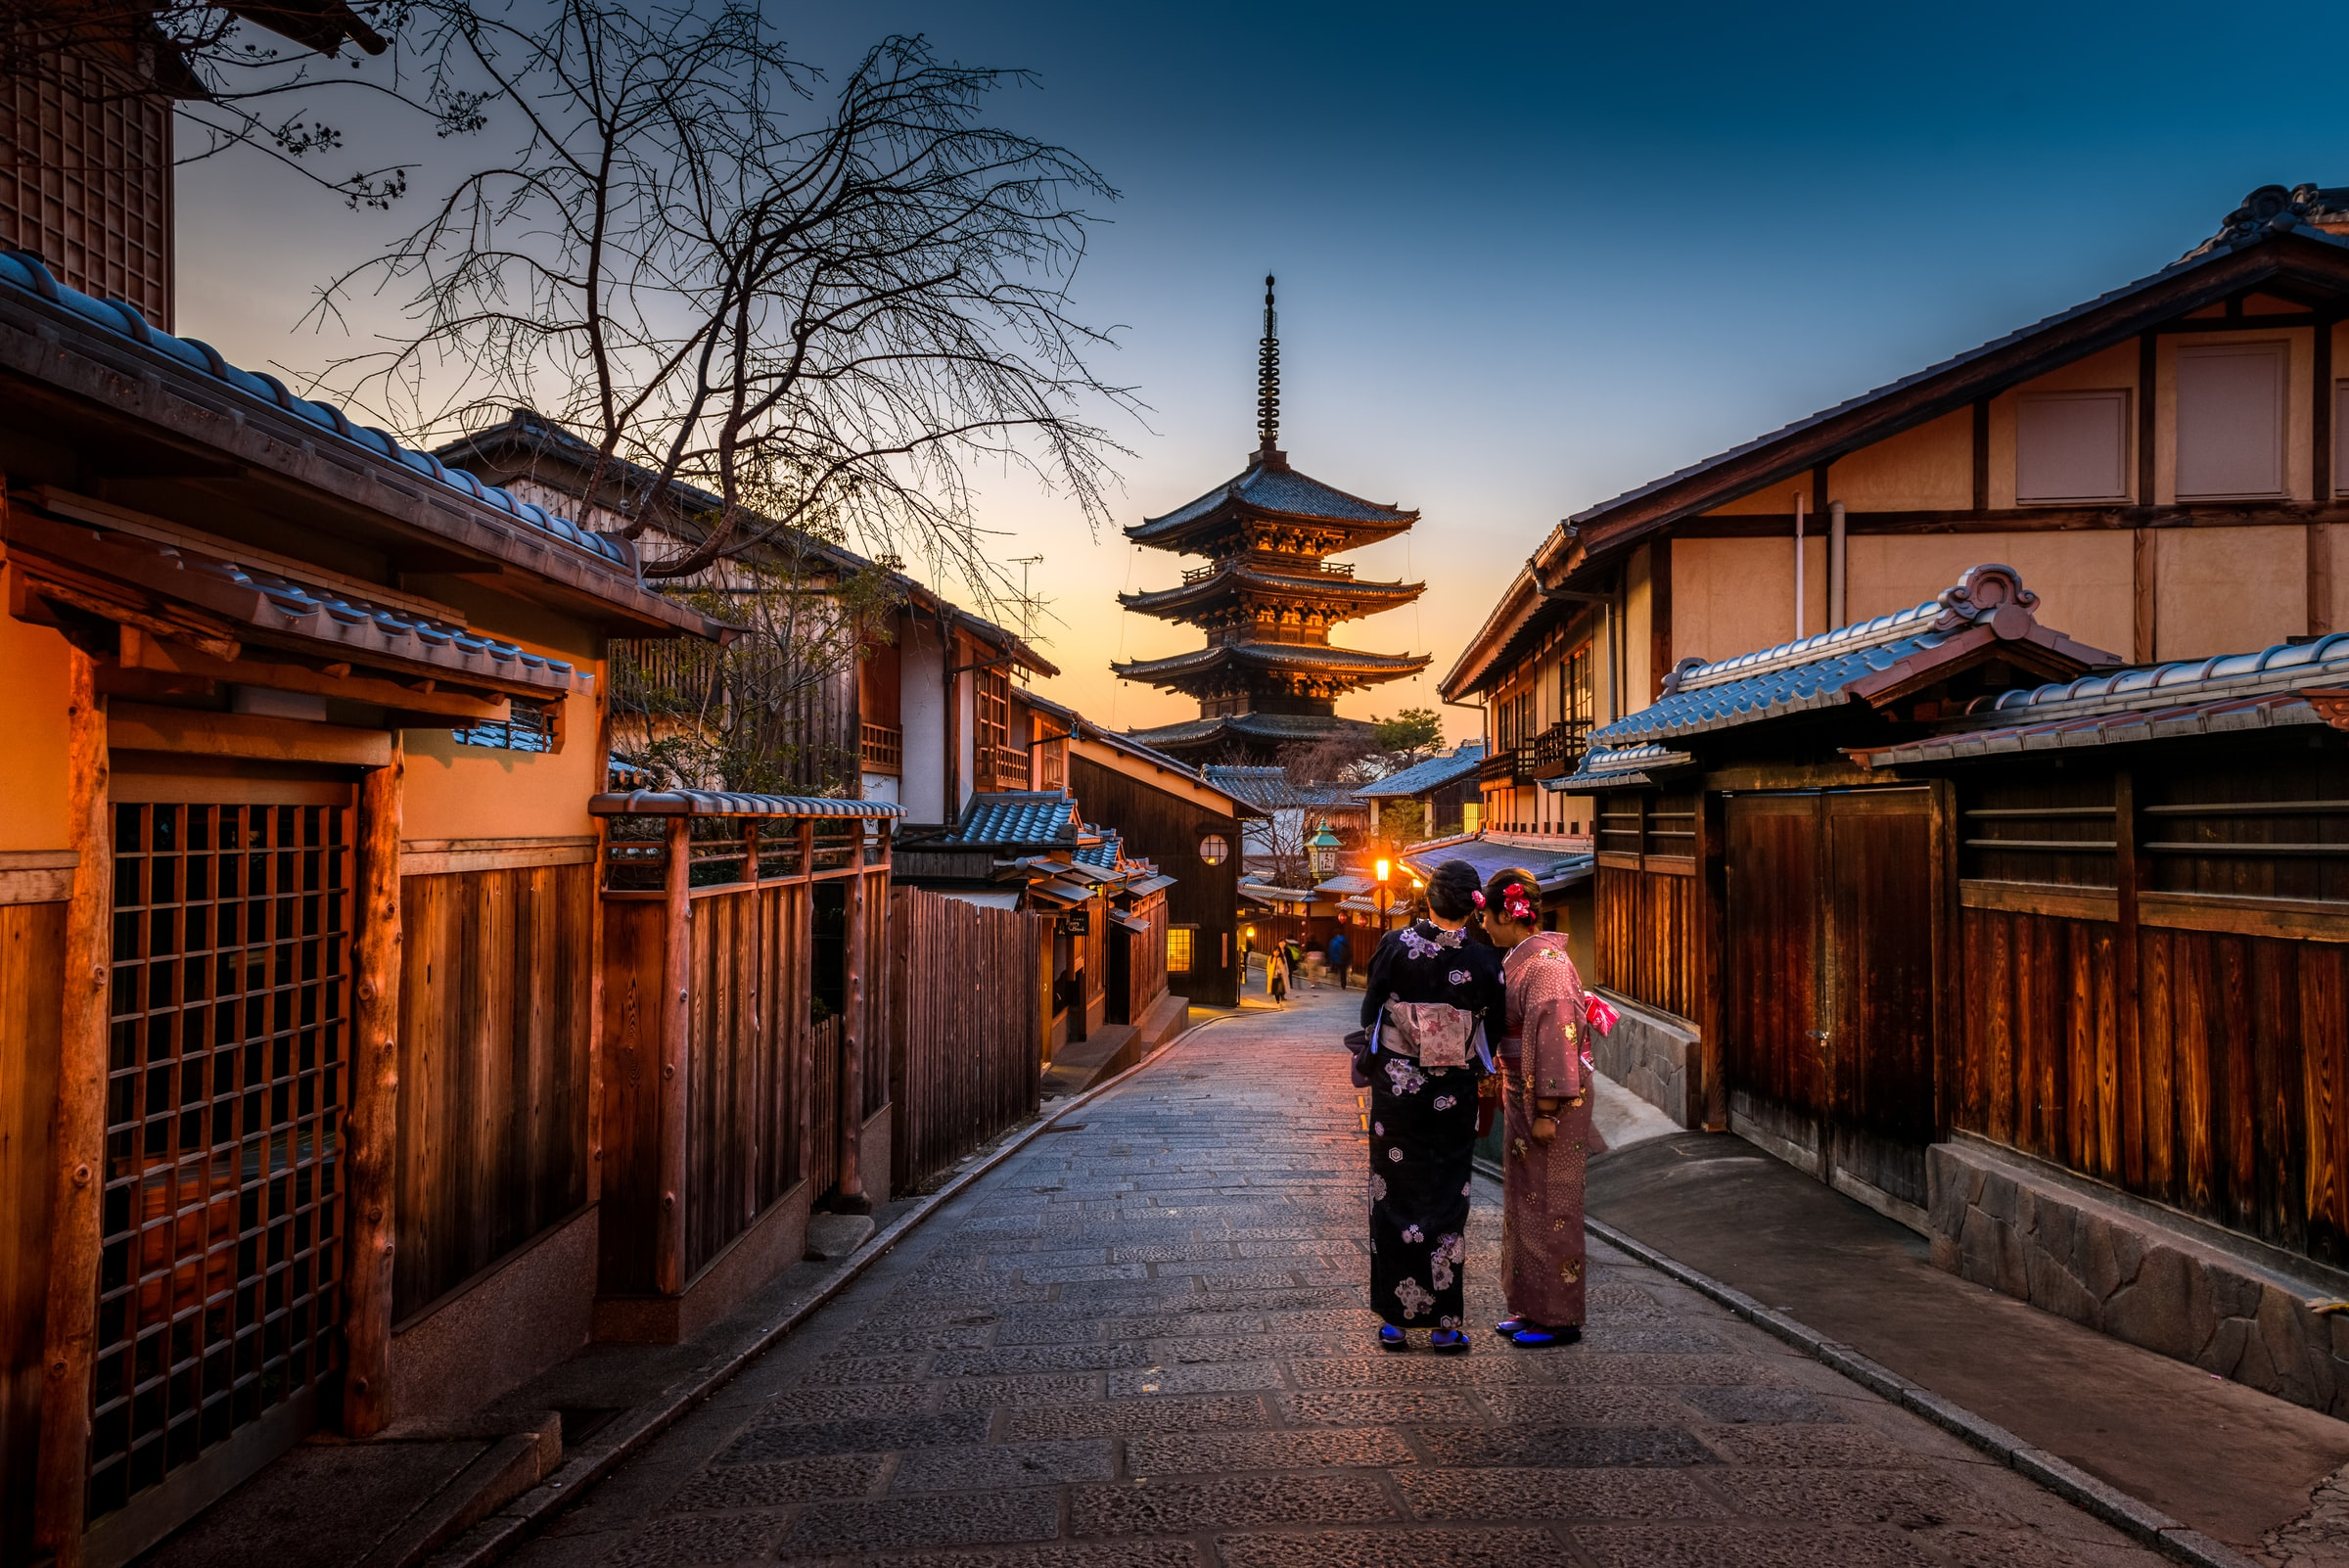 10 Things To Do In Kyoto Prefecture, Japan [with Suggested Tours] 01